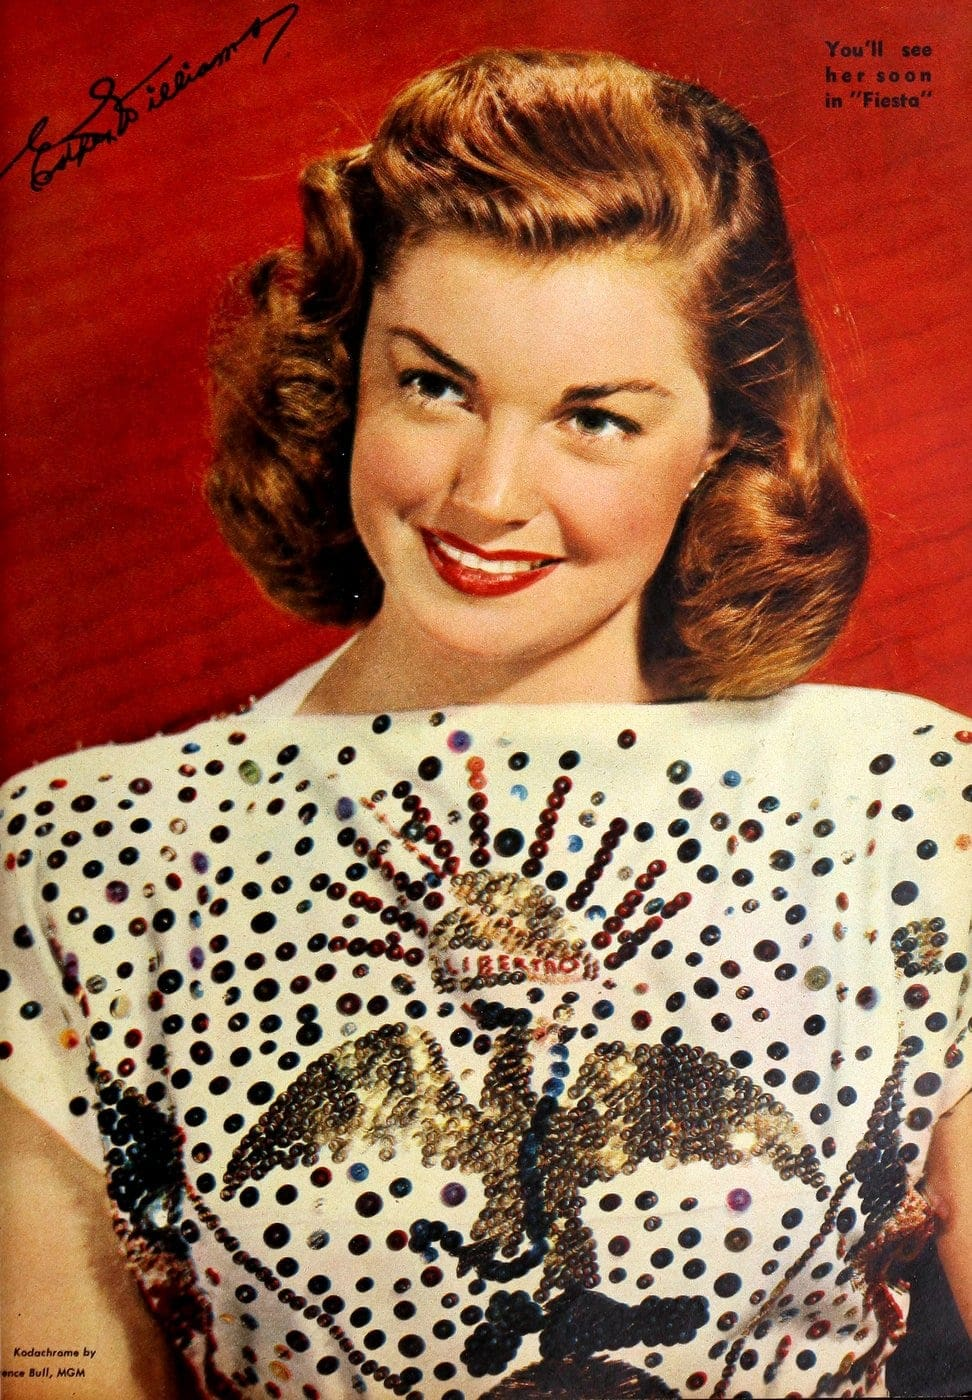 Esther Williams hairstyle from the forties